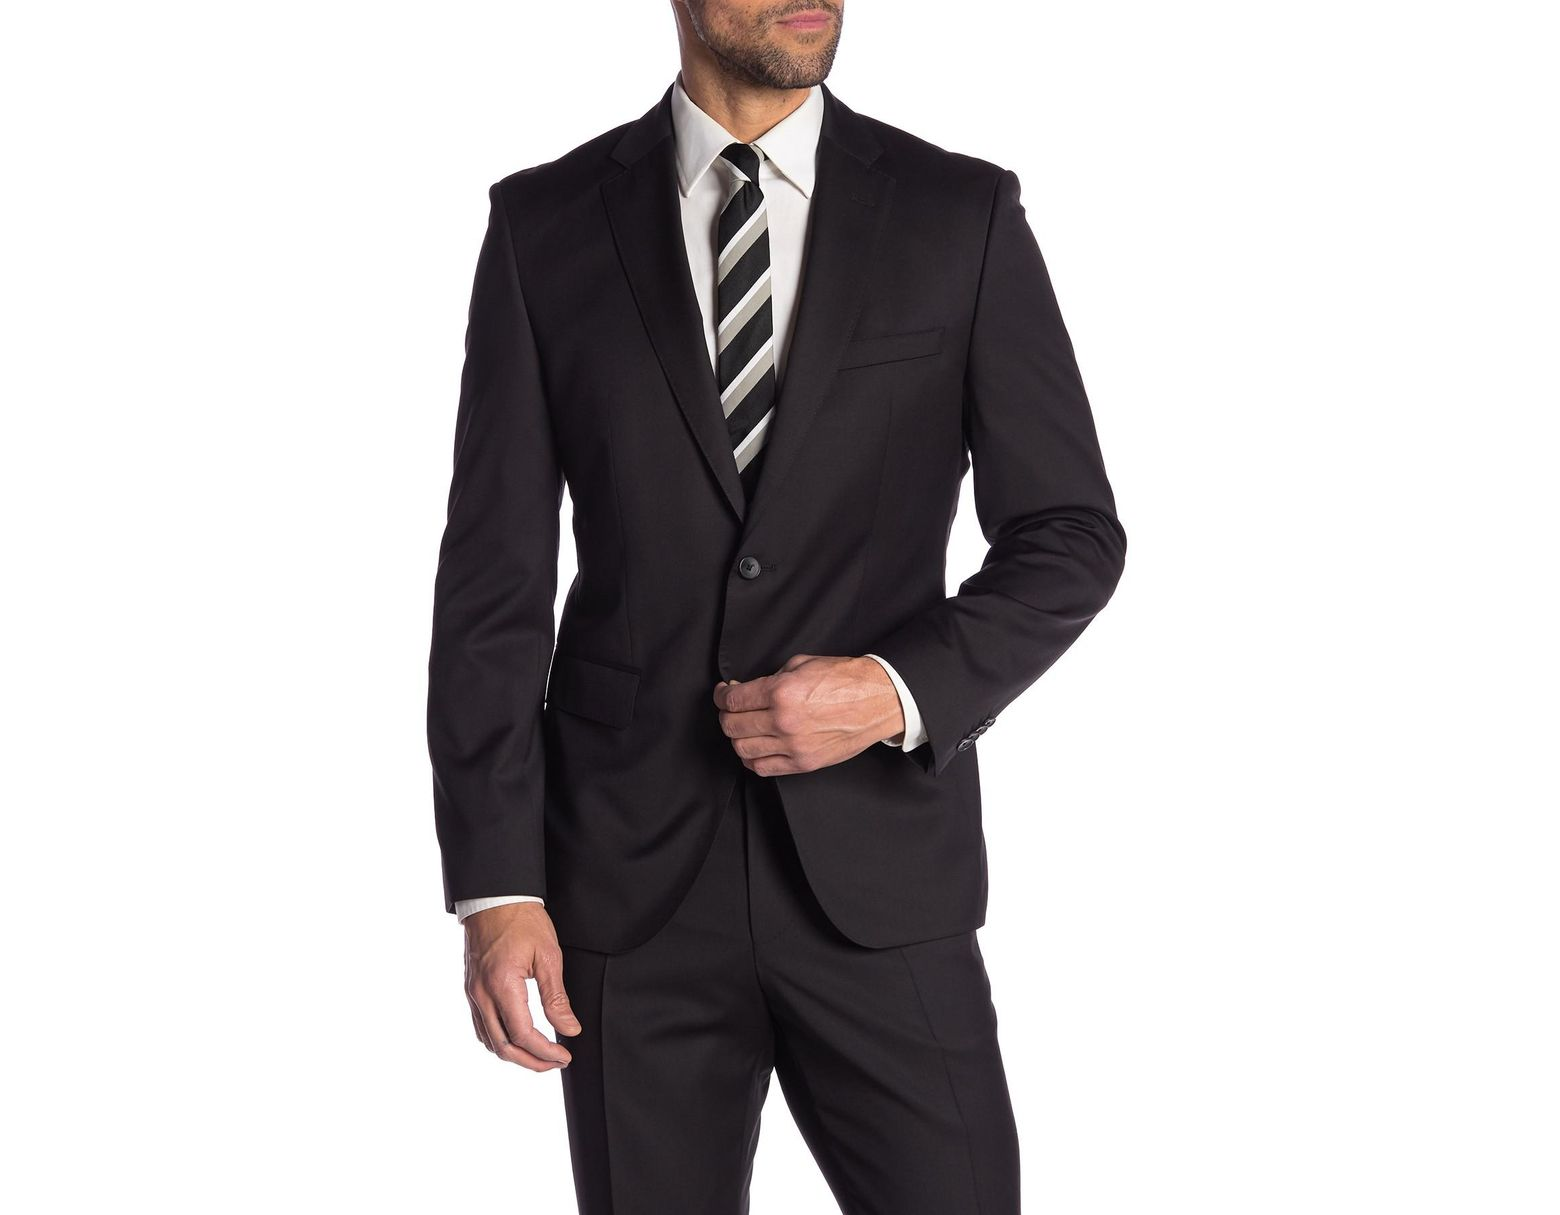 607bb9a3ddf BOSS Johnstons Black Solid Two Button Notch Lapel Wool Suit Separates Jacket  in Black for Men - Lyst